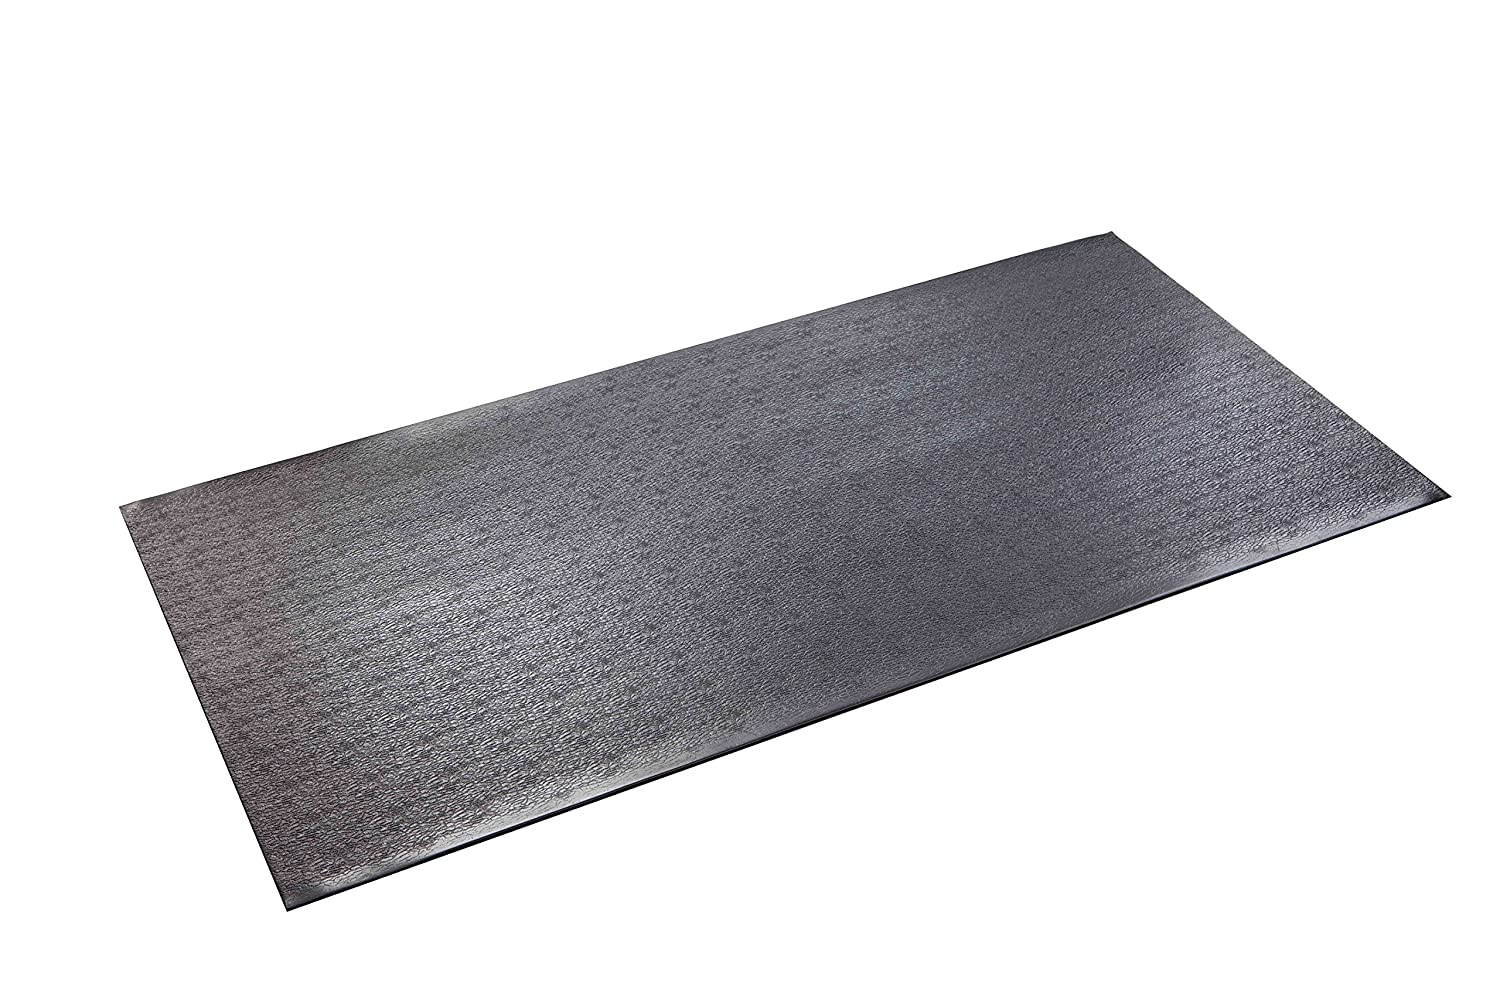 SuperMats High Density Commercial Grade Solid Equipment Mat 40GS Made in U.S.A. for Cardio Equipment Recumbent Bikes and General Floor Mat Needs (2.5 Feet x 5 Feet) (30 in x 60 in)